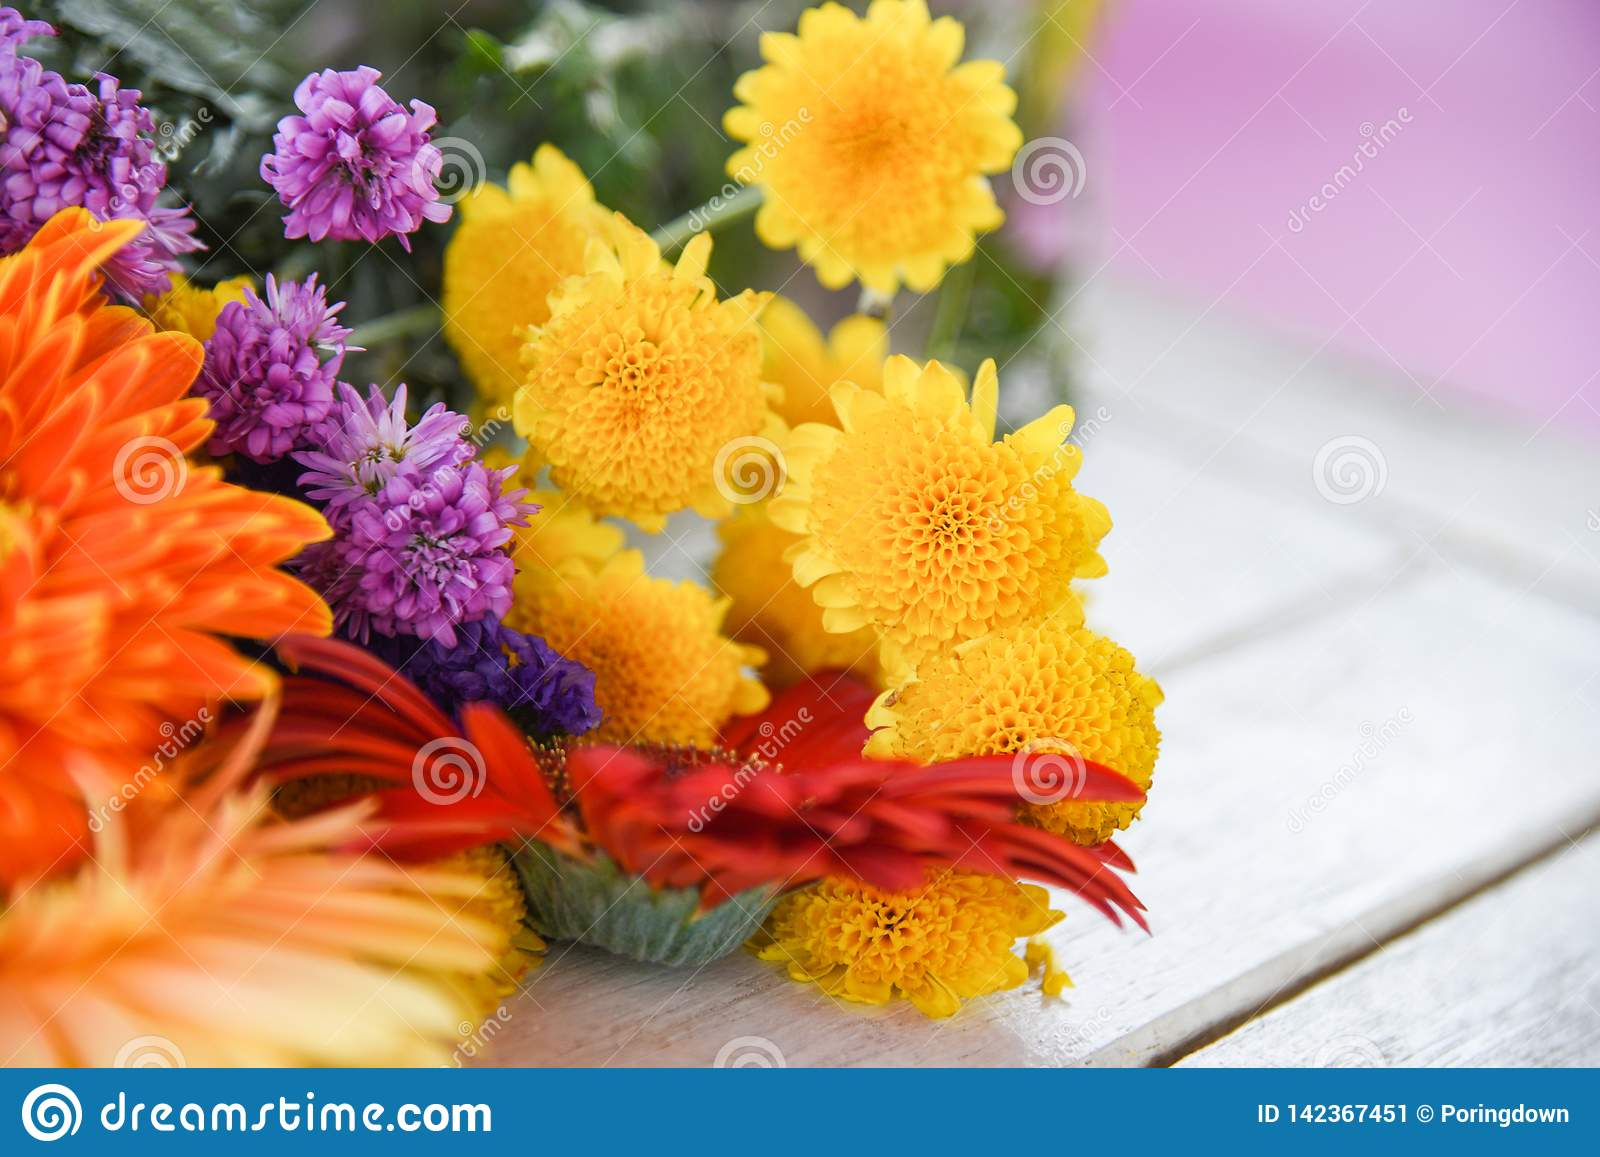 Beautiful flower bunch colorful spring various types flowers decorate on table